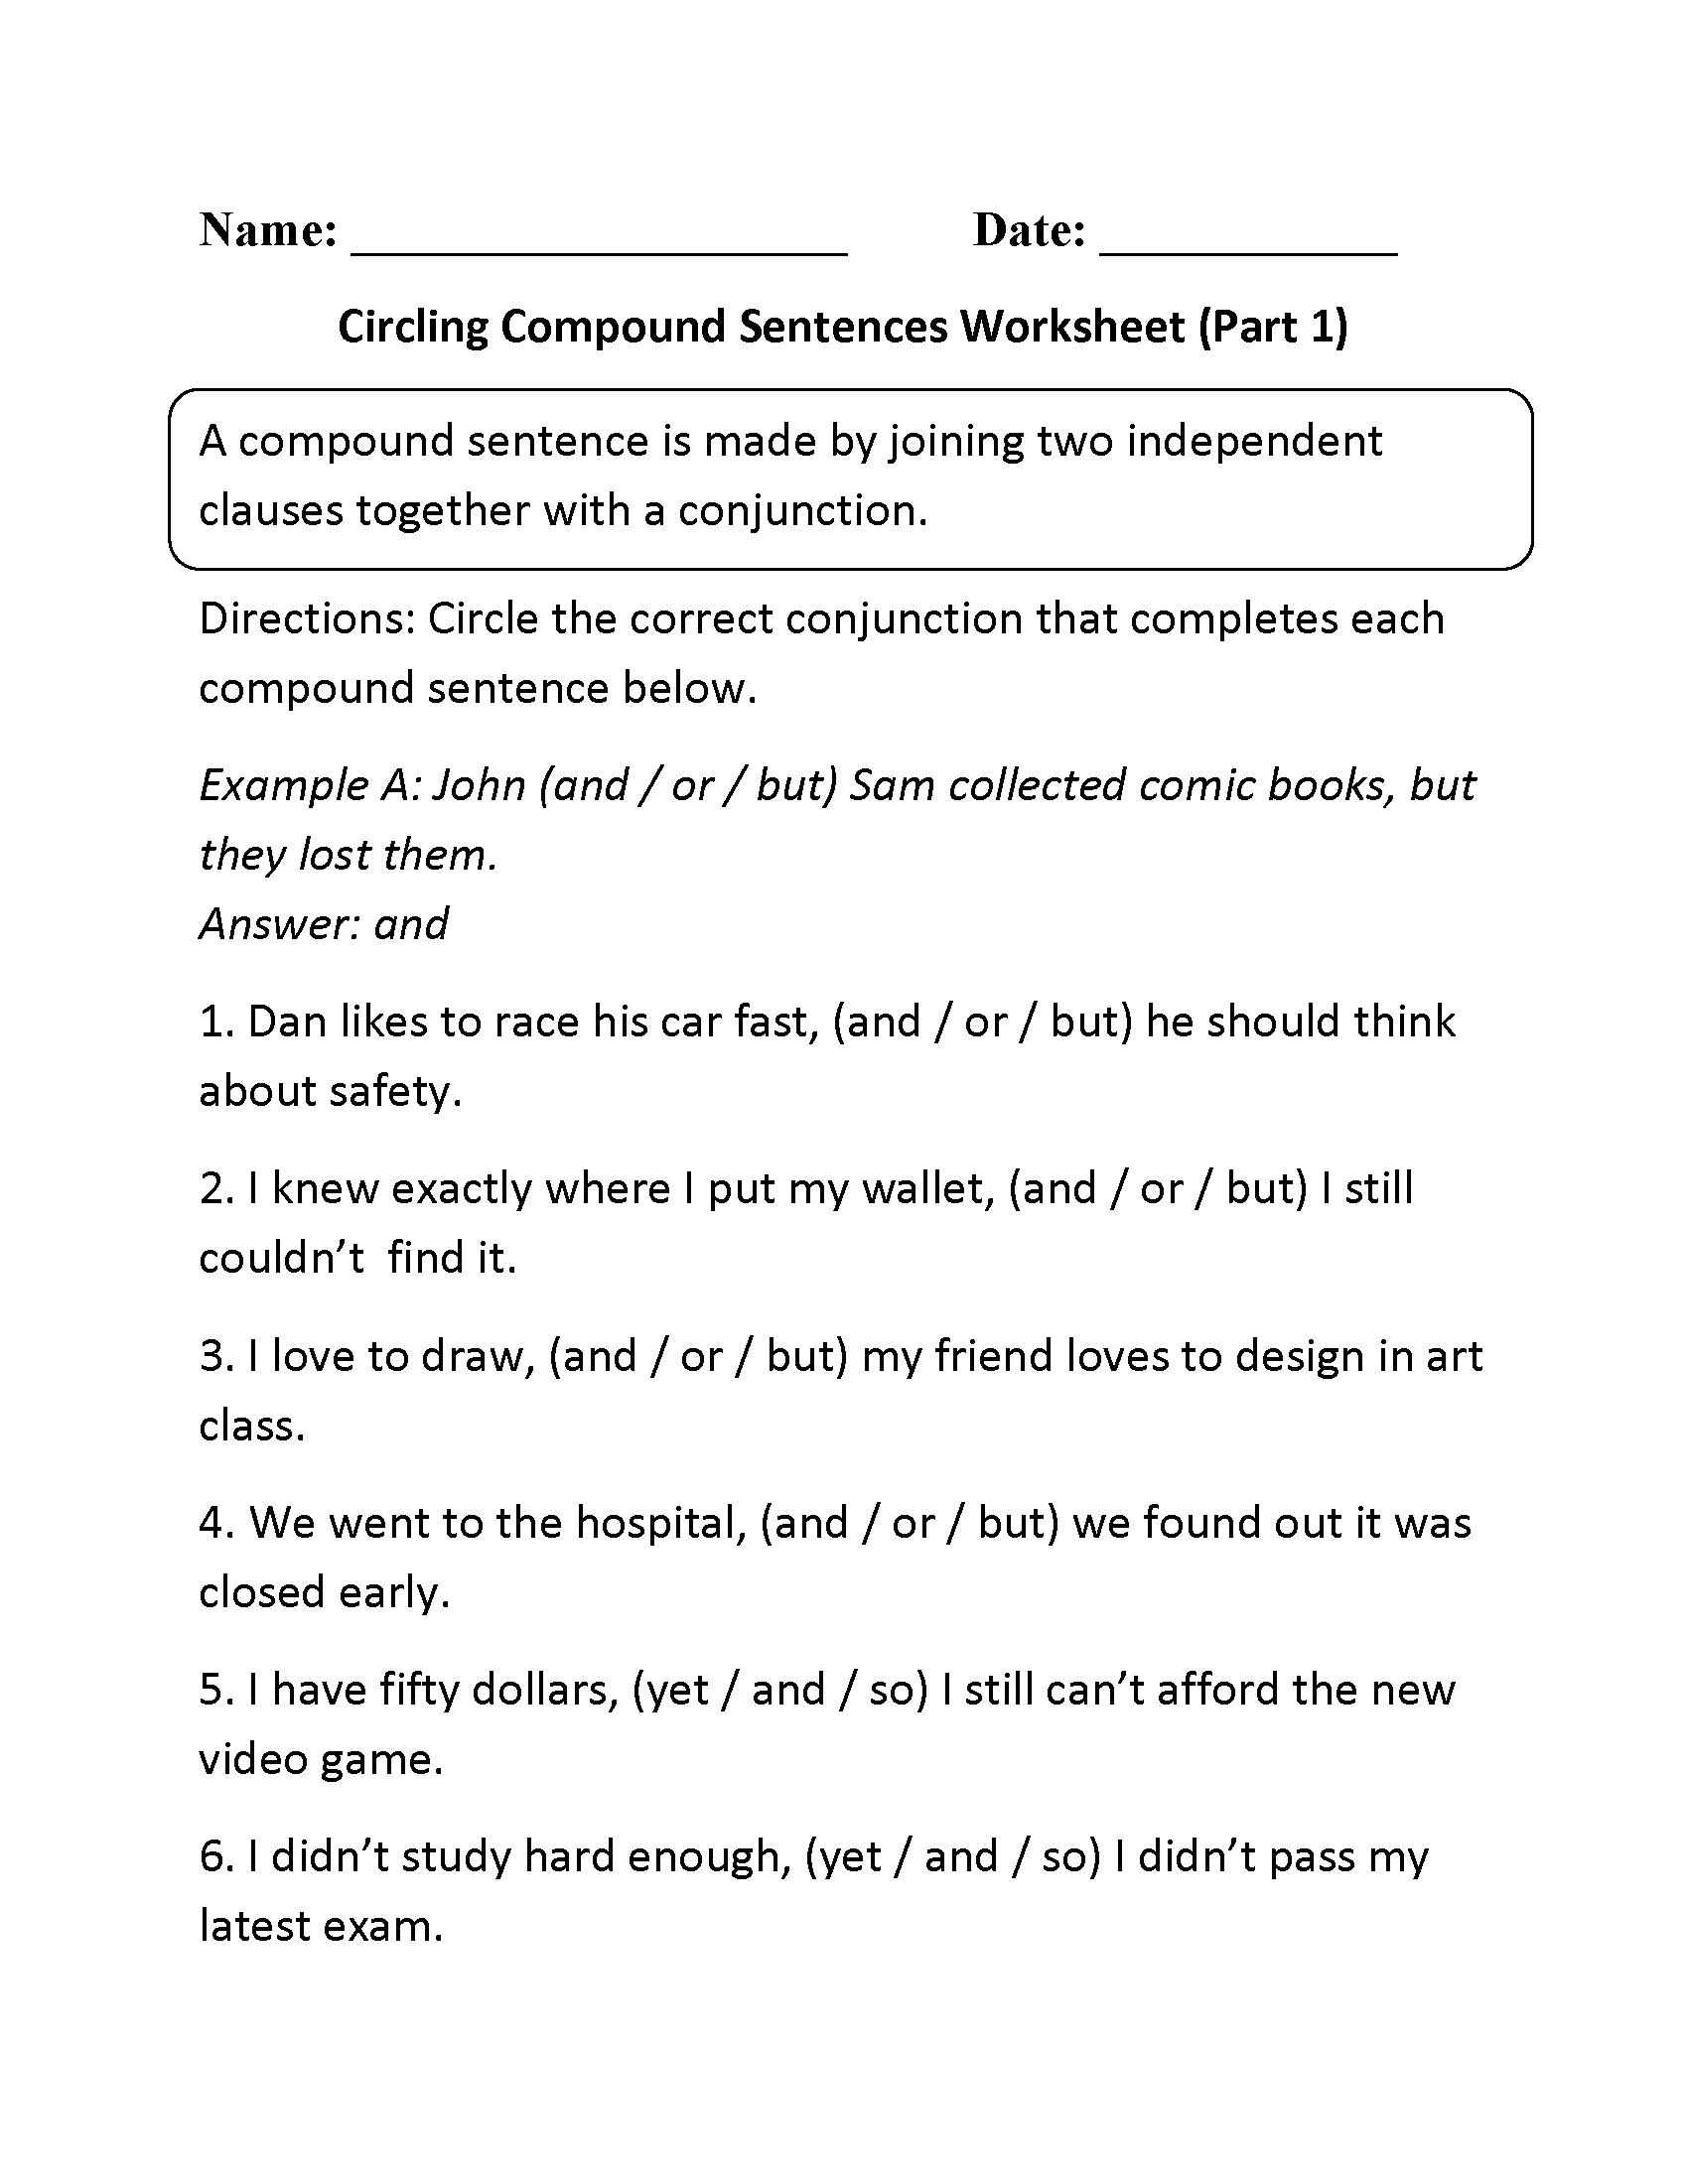 worksheet Run On Sentences And Fragments Worksheet sentences worksheets compound worksheet part 1